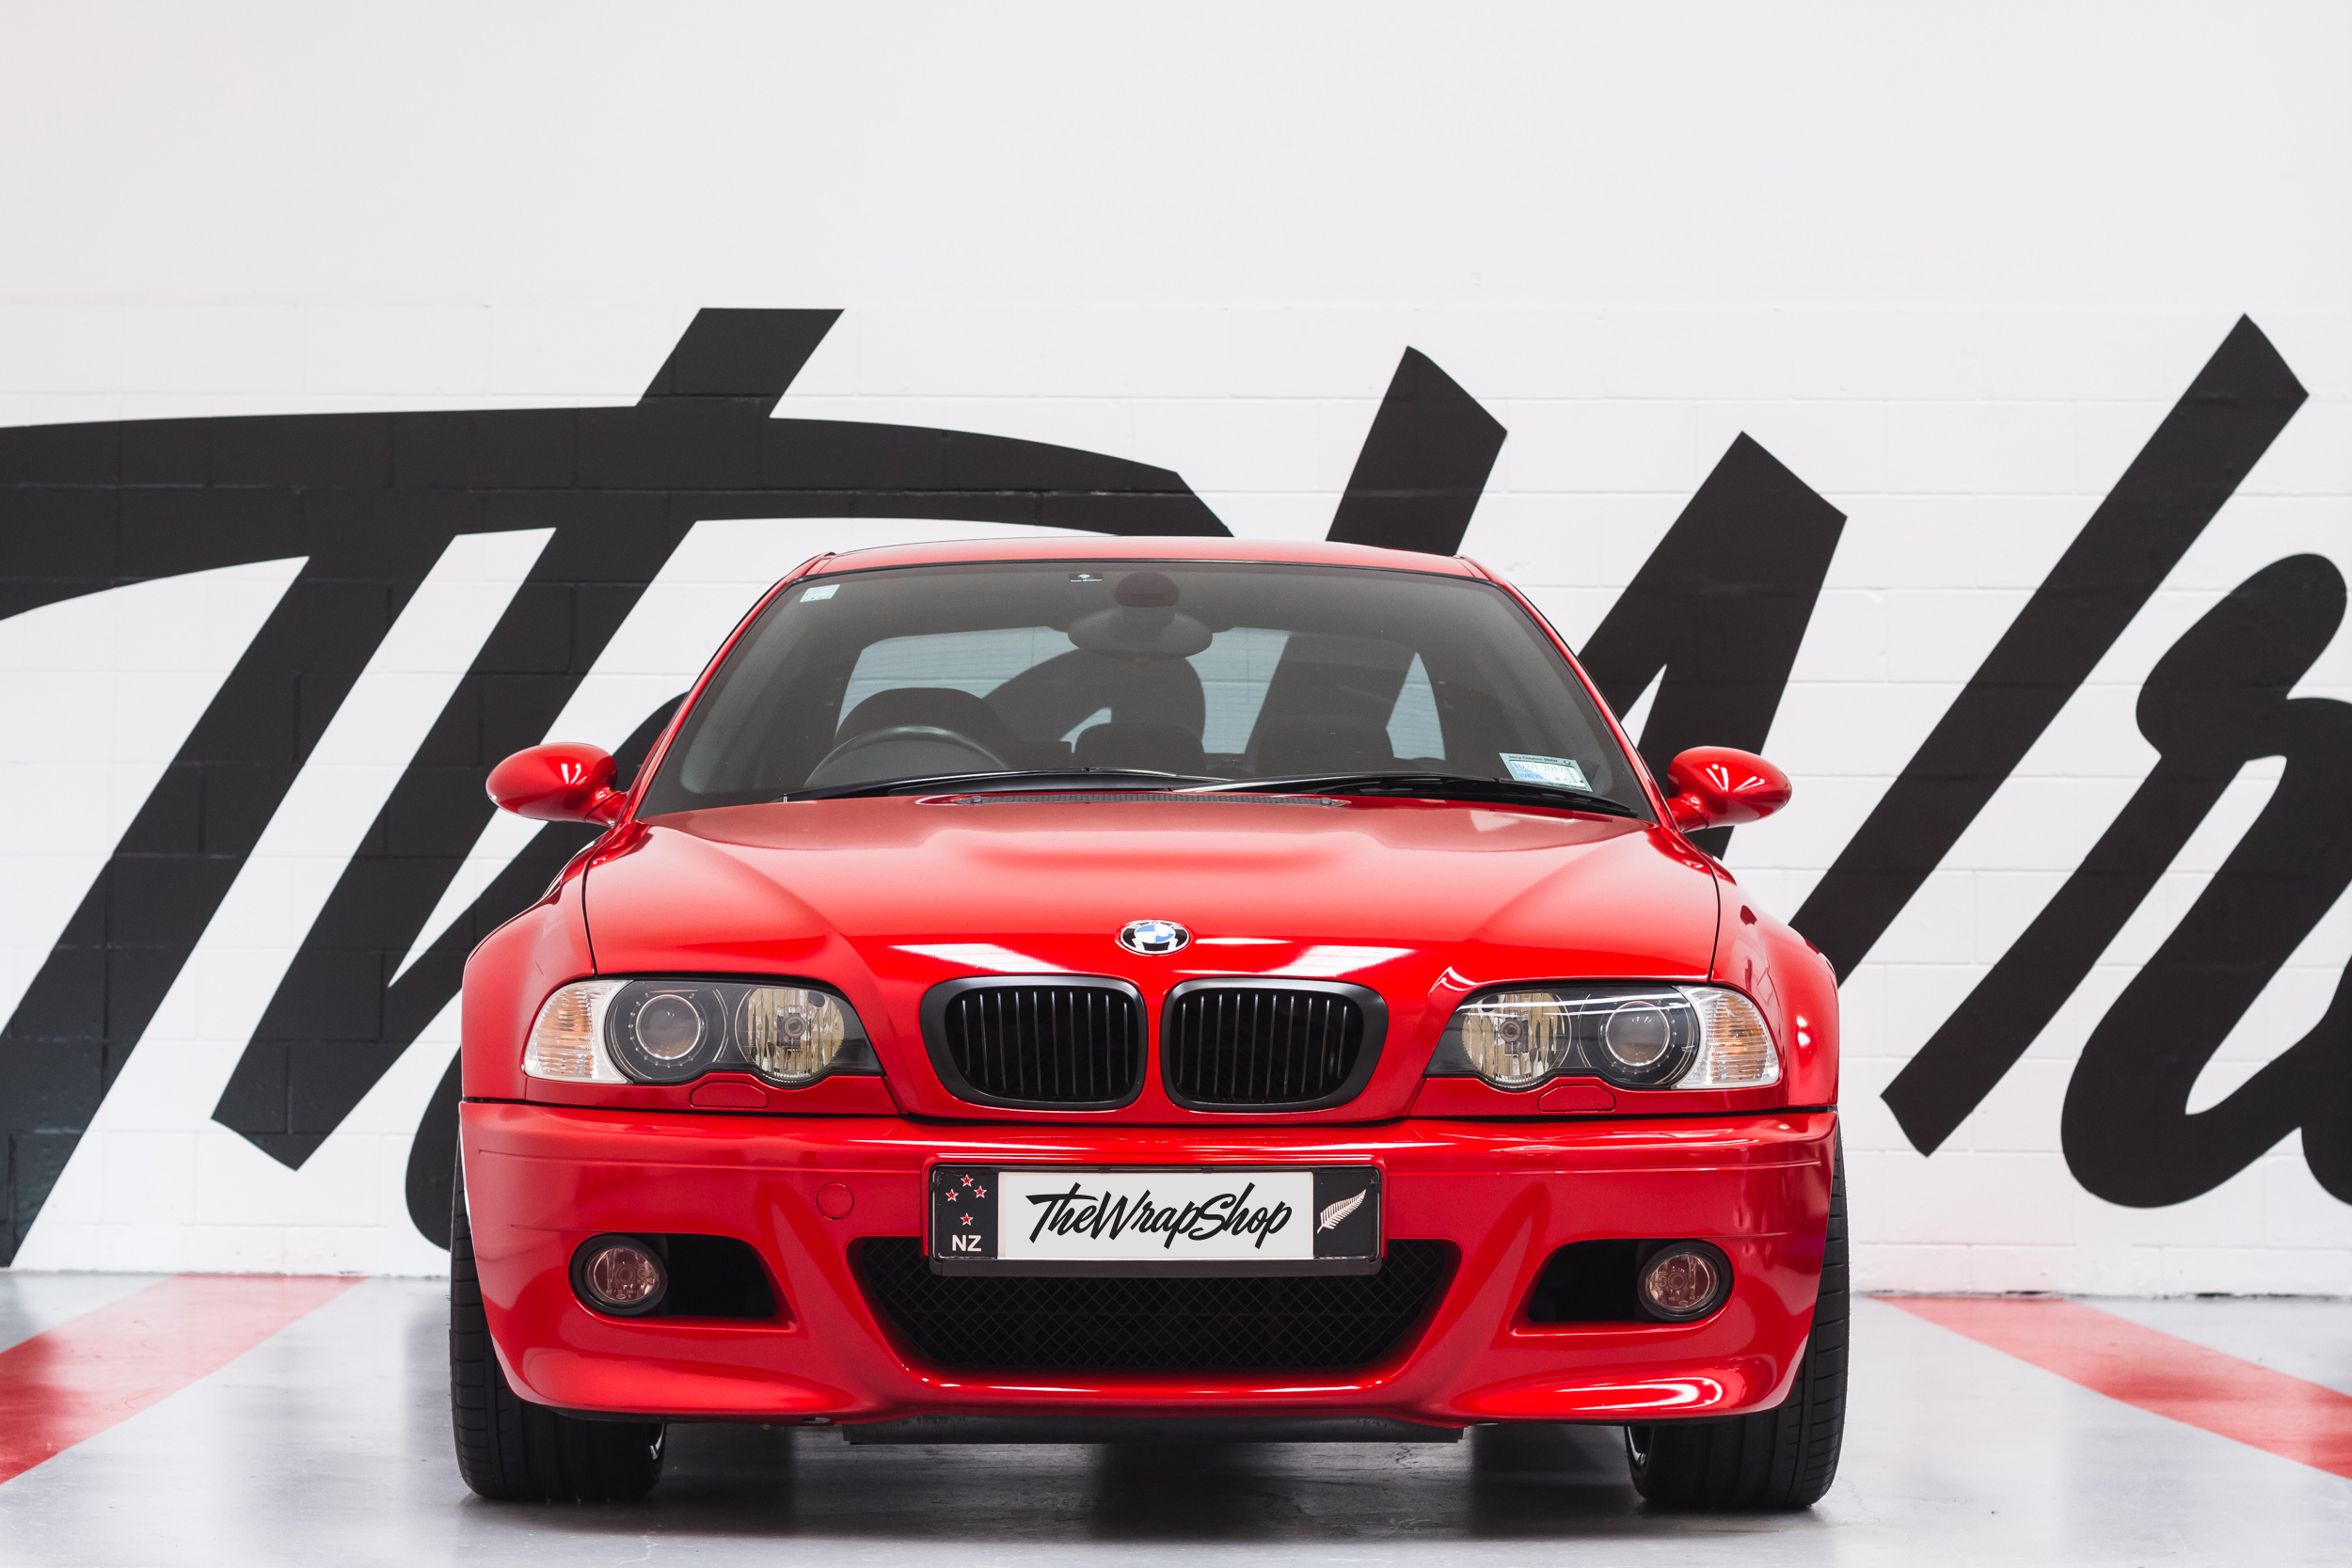 E46 BMW M3 wrapped